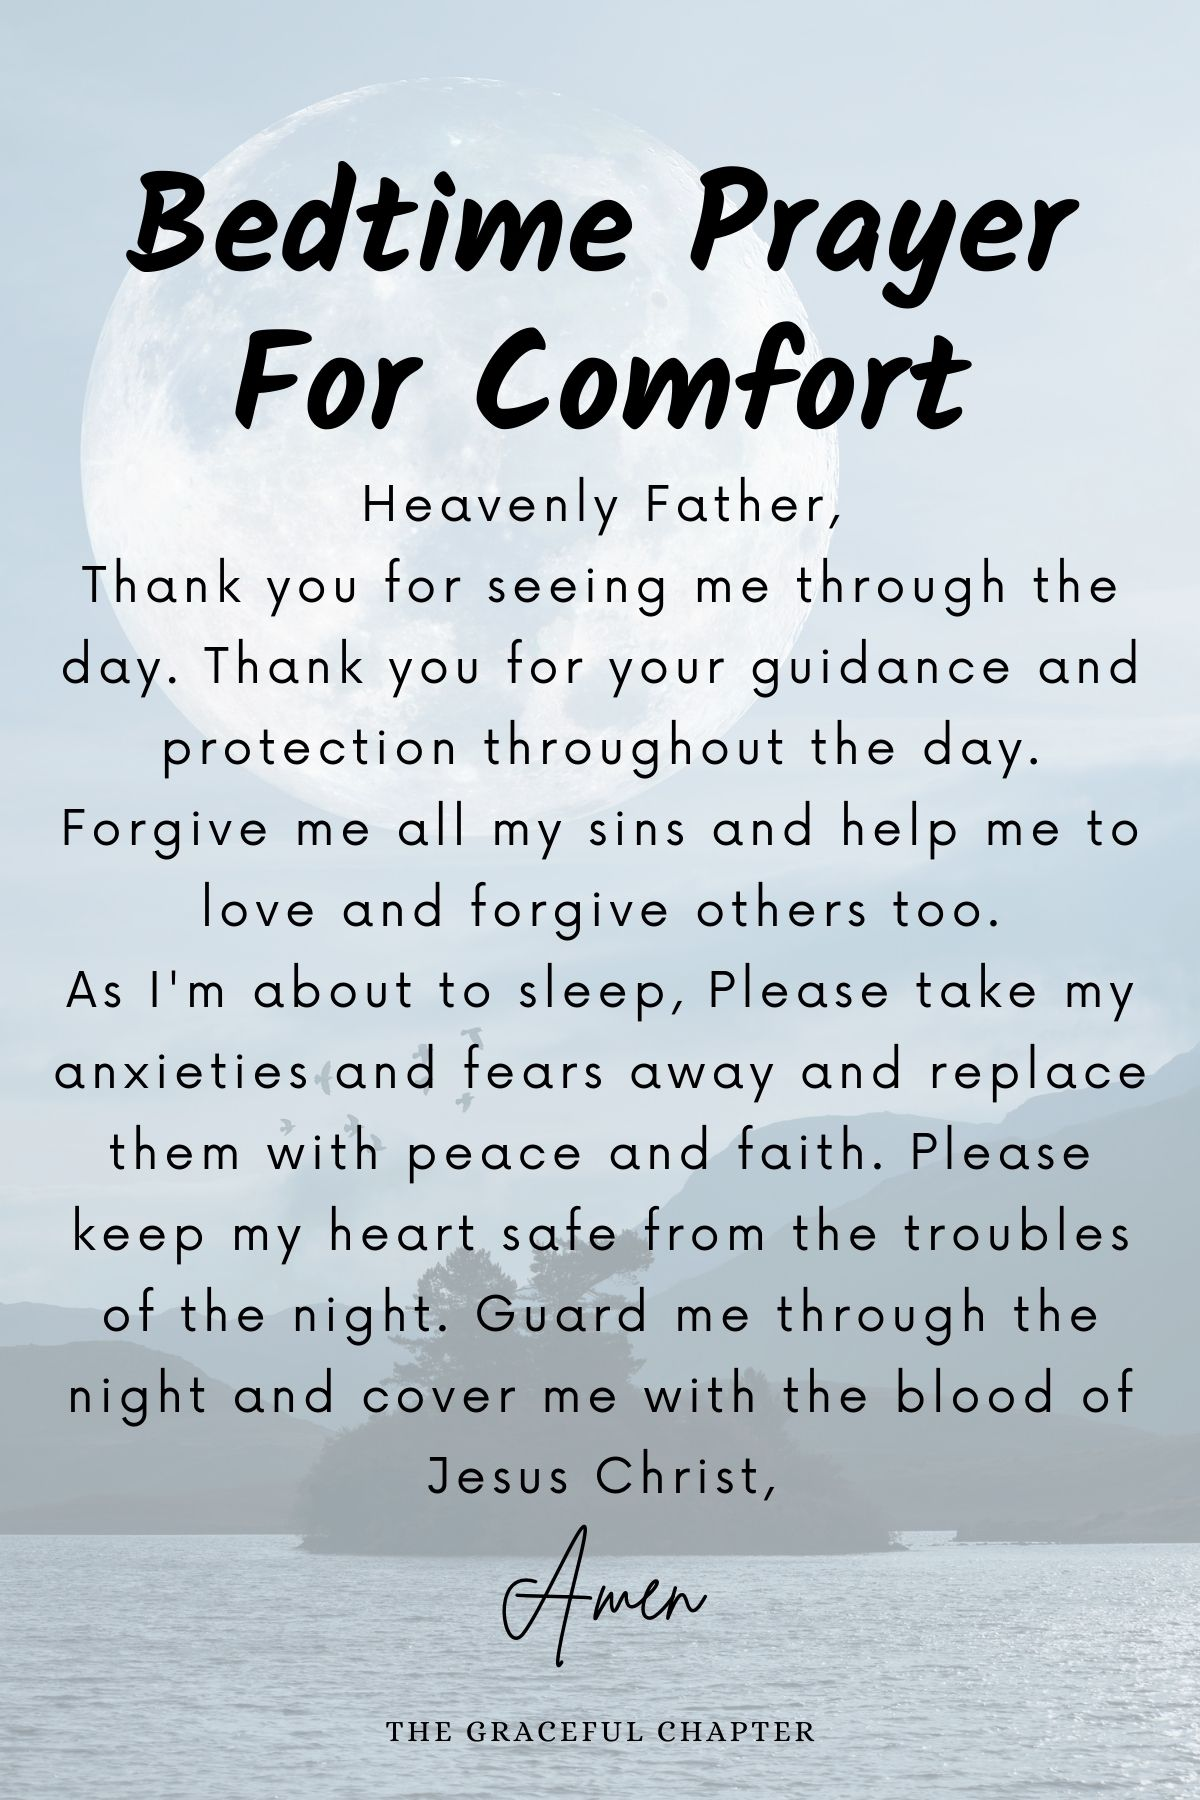 Bedtime prayer for comfort and peace